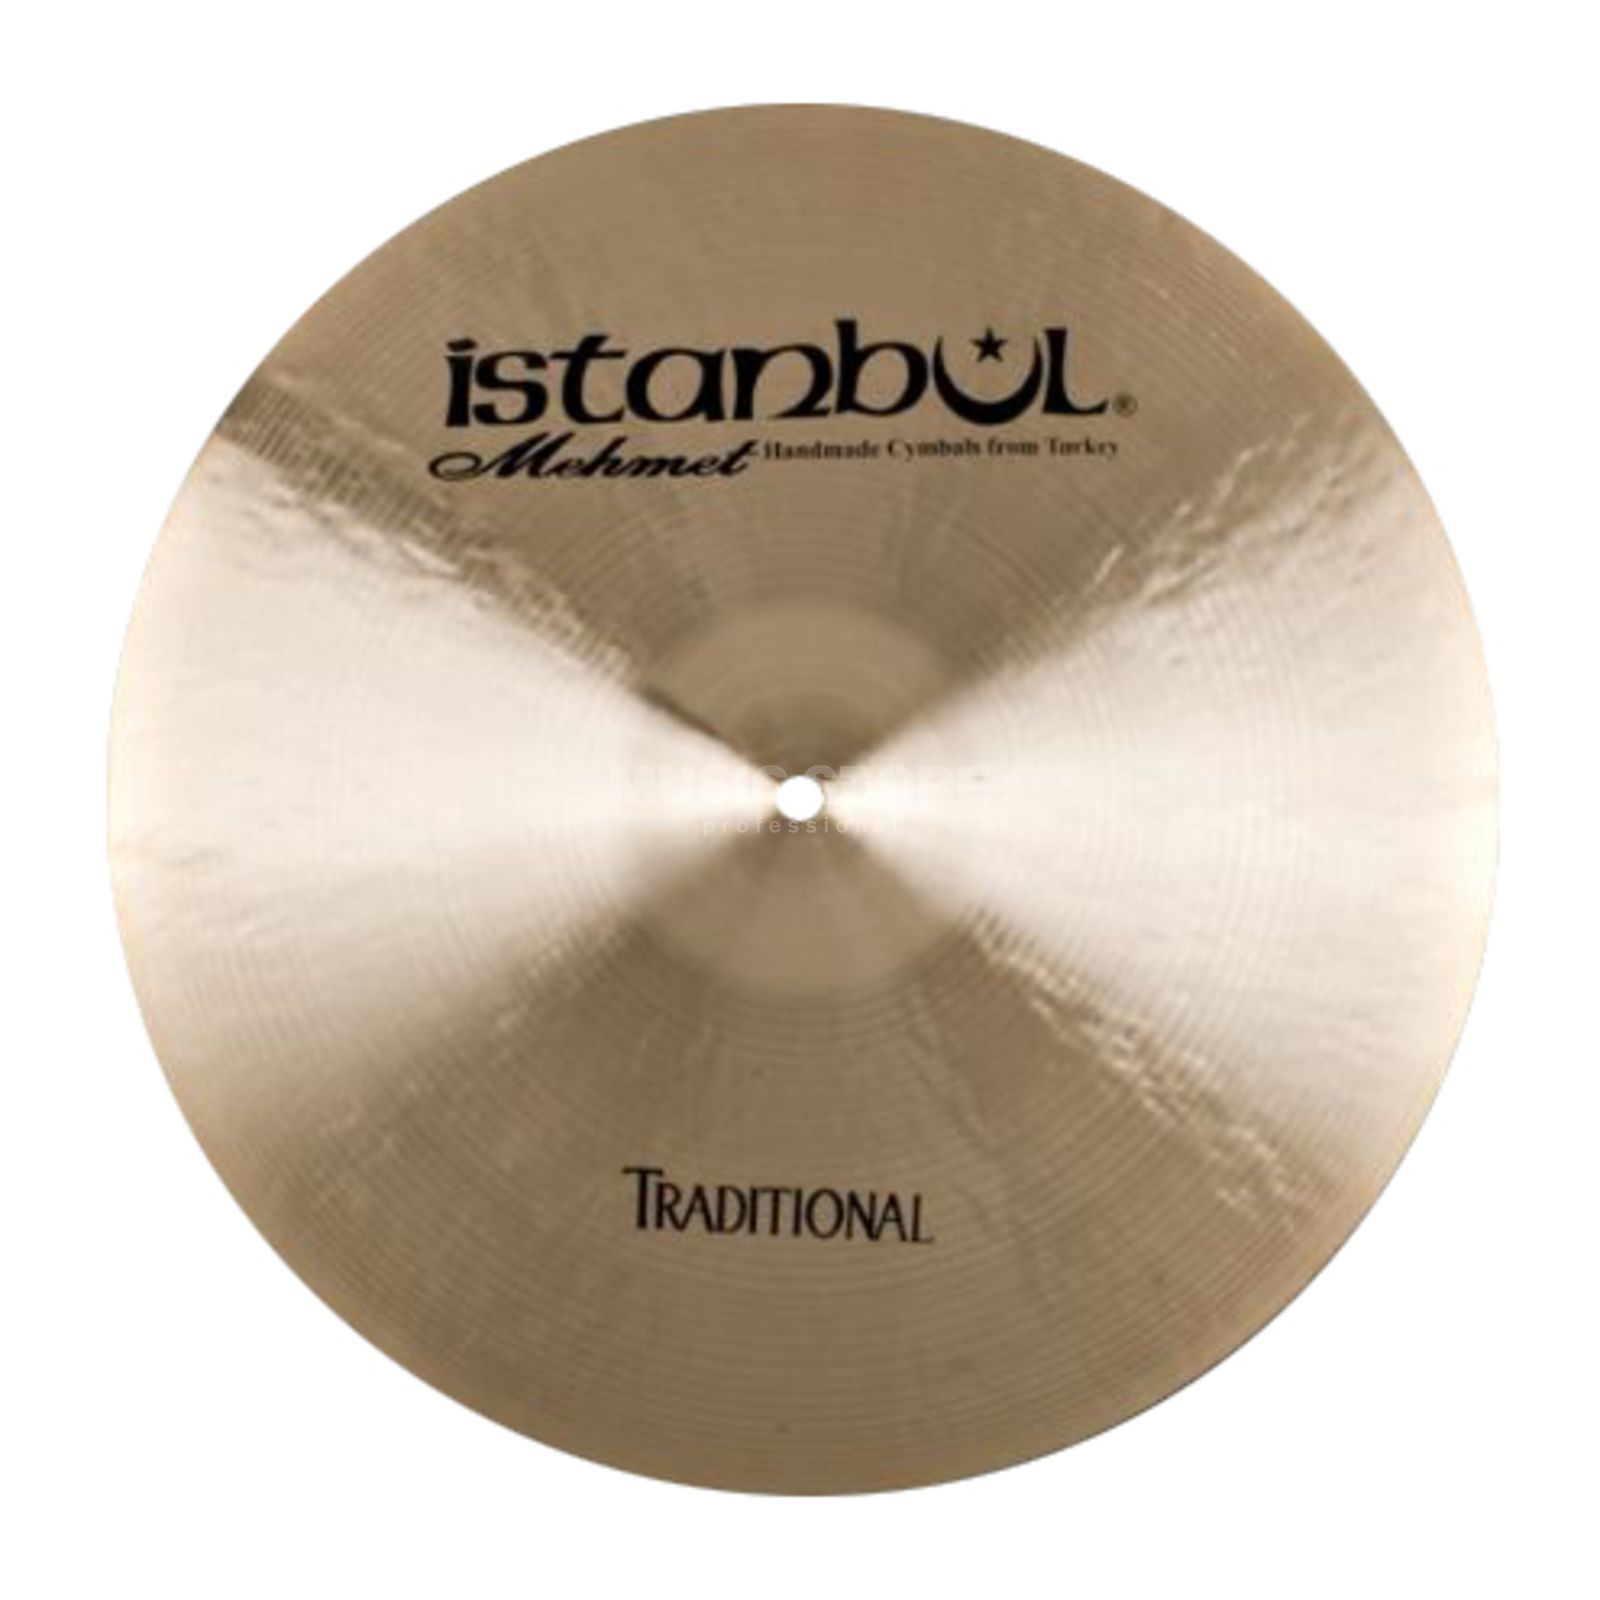 "Istanbul Traditional Heavy Crash 17"", CVY17 Produktbild"